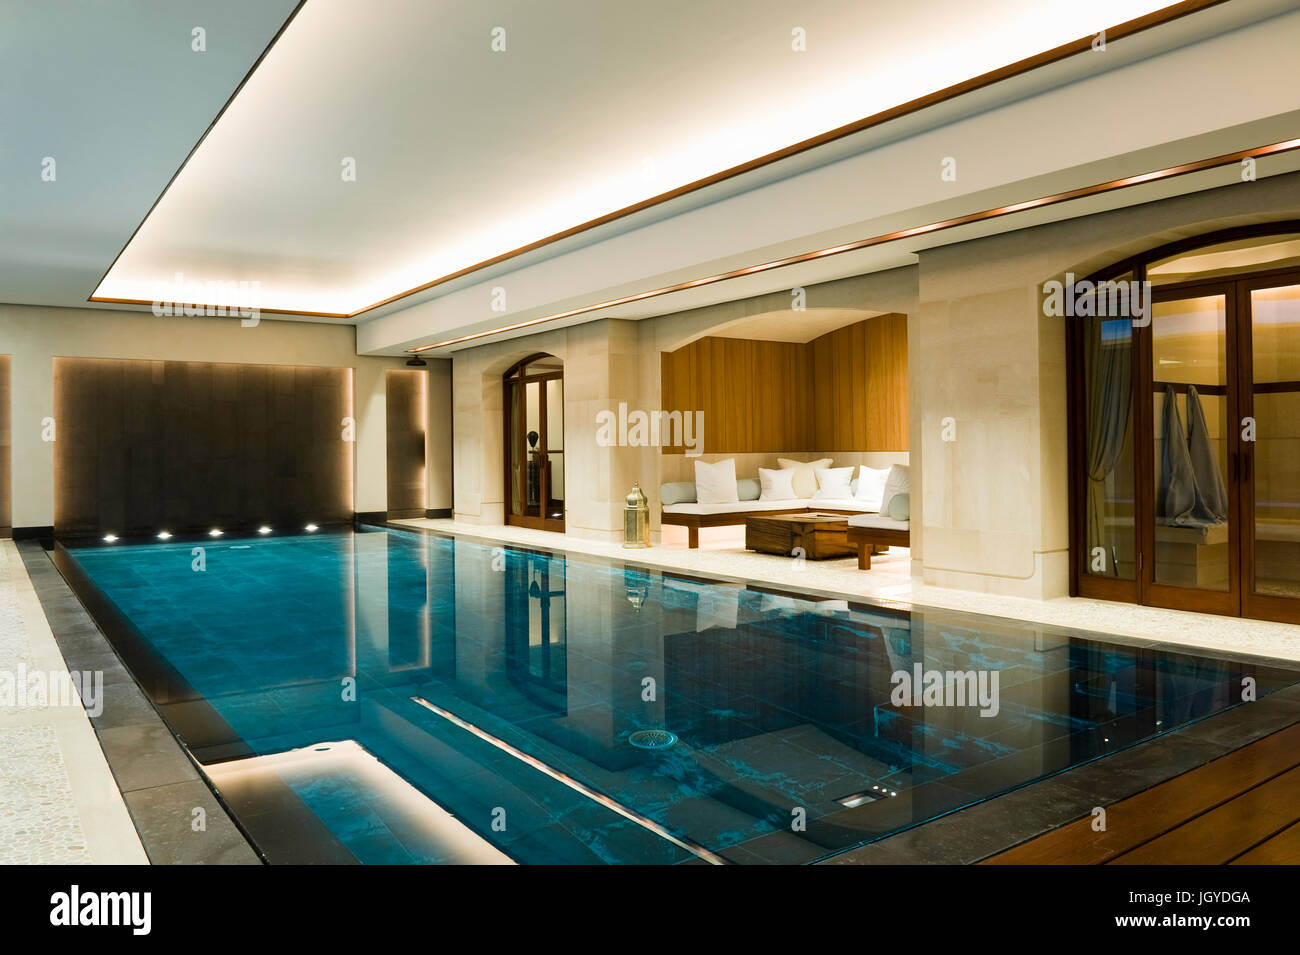 Indoor swimming pool with recessed seating area - Stock Image